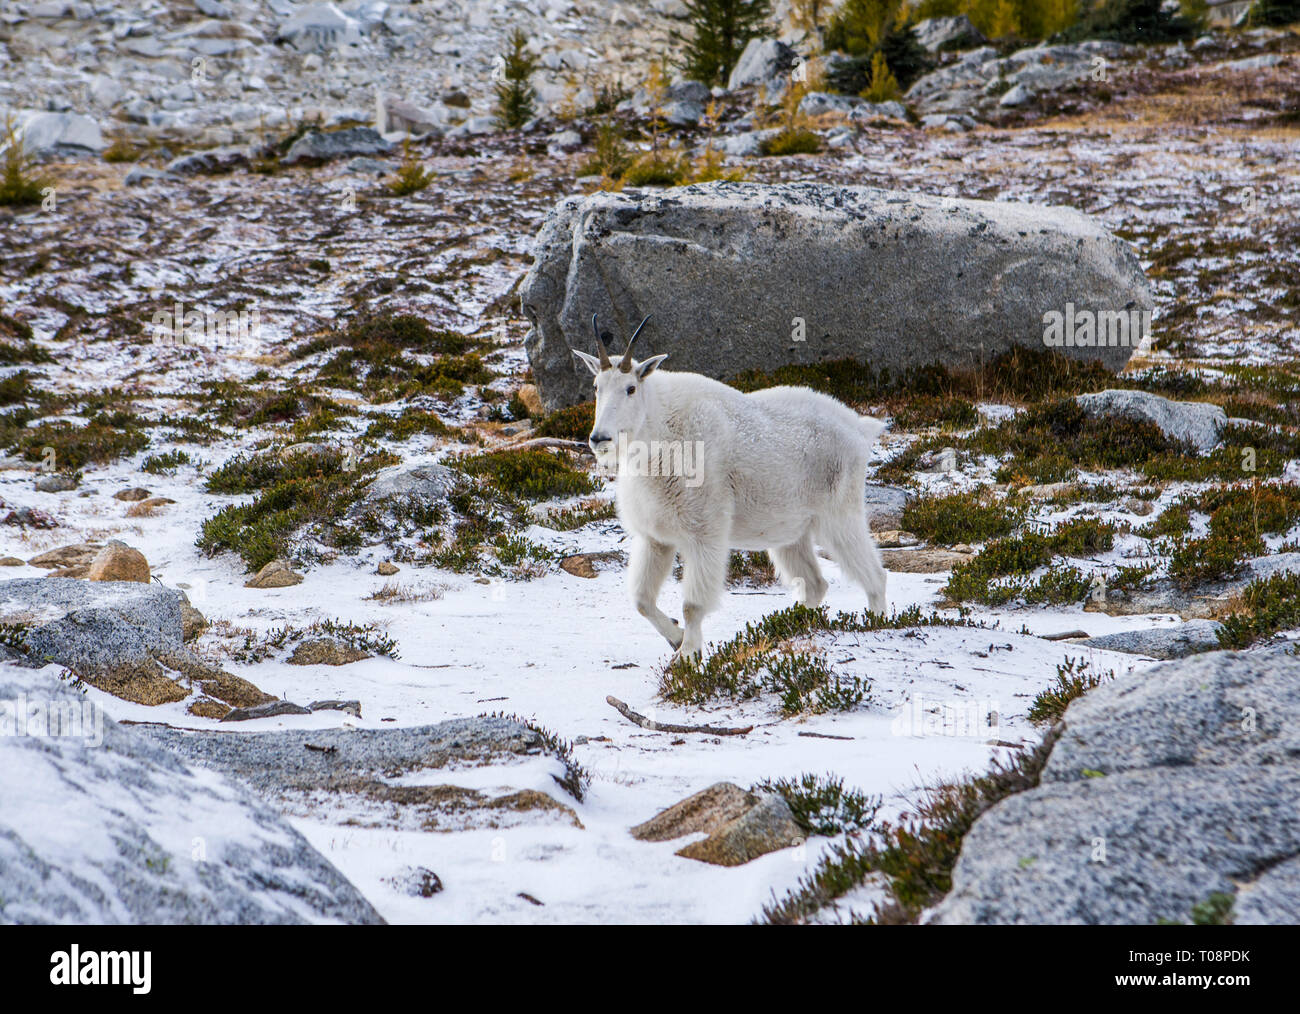 A mountain goat in the Upper Enchantment Lakes Wilderness Area, Washington Cascades, USA. - Stock Image